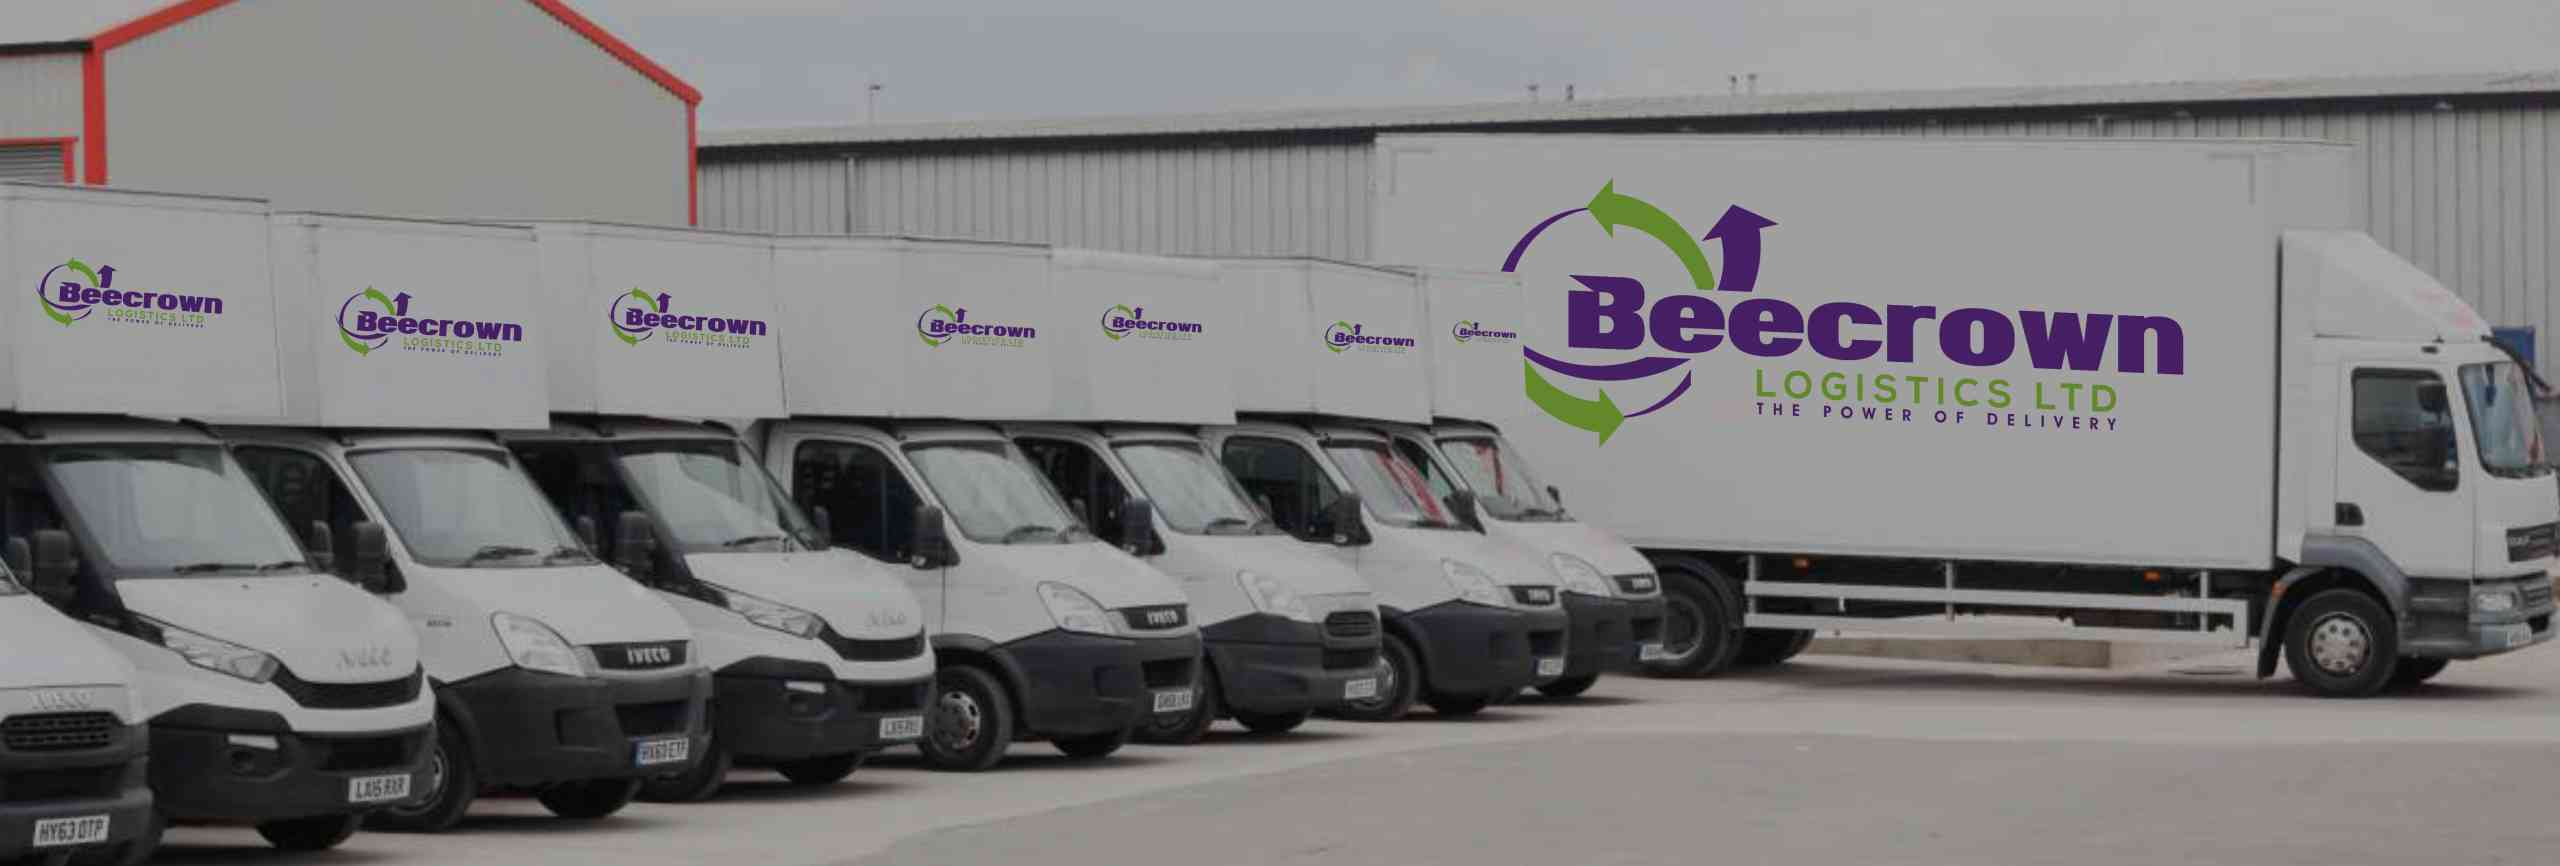 Save Time with Best Courier Service in UK